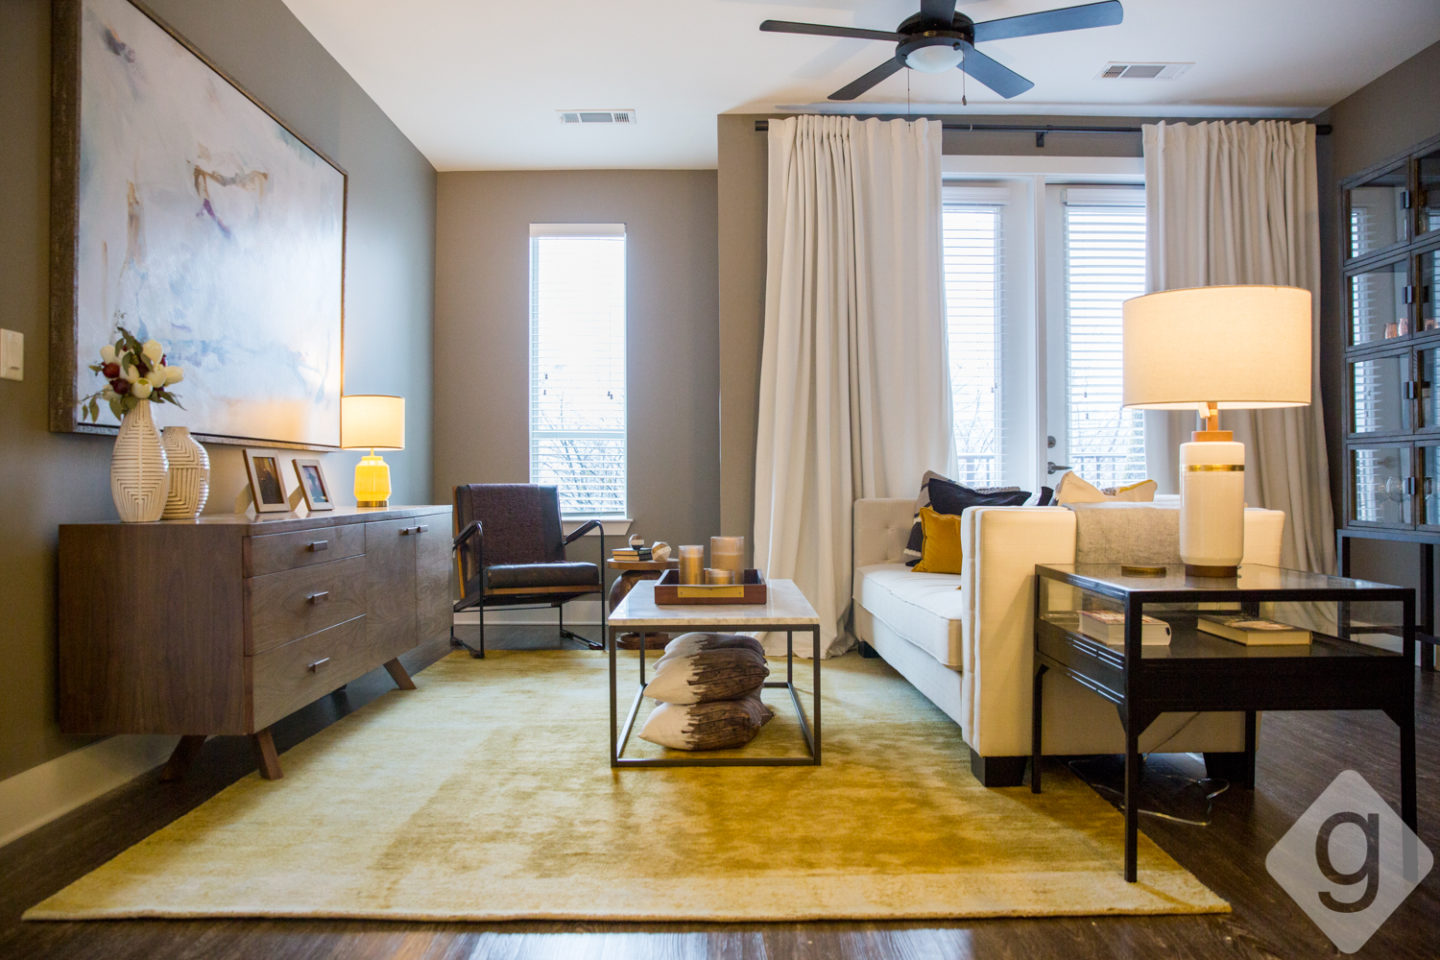 Apartments. Highlights: Expansive Walk In Closets, Hardwood Cabinetry, Nest  Thermostat